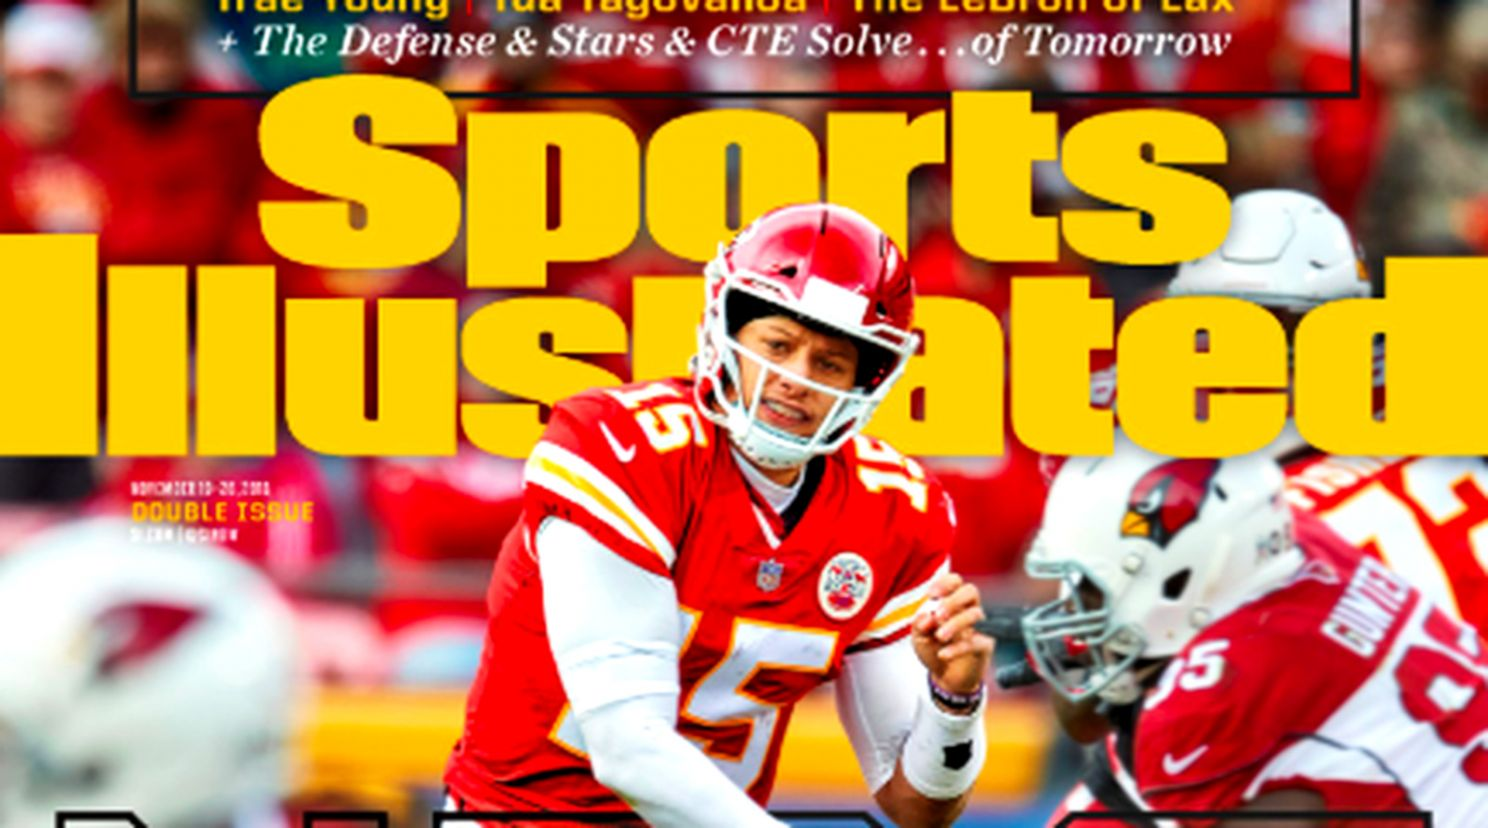 Kansas City Chiefs Illustrated Image Wallpaper Smart